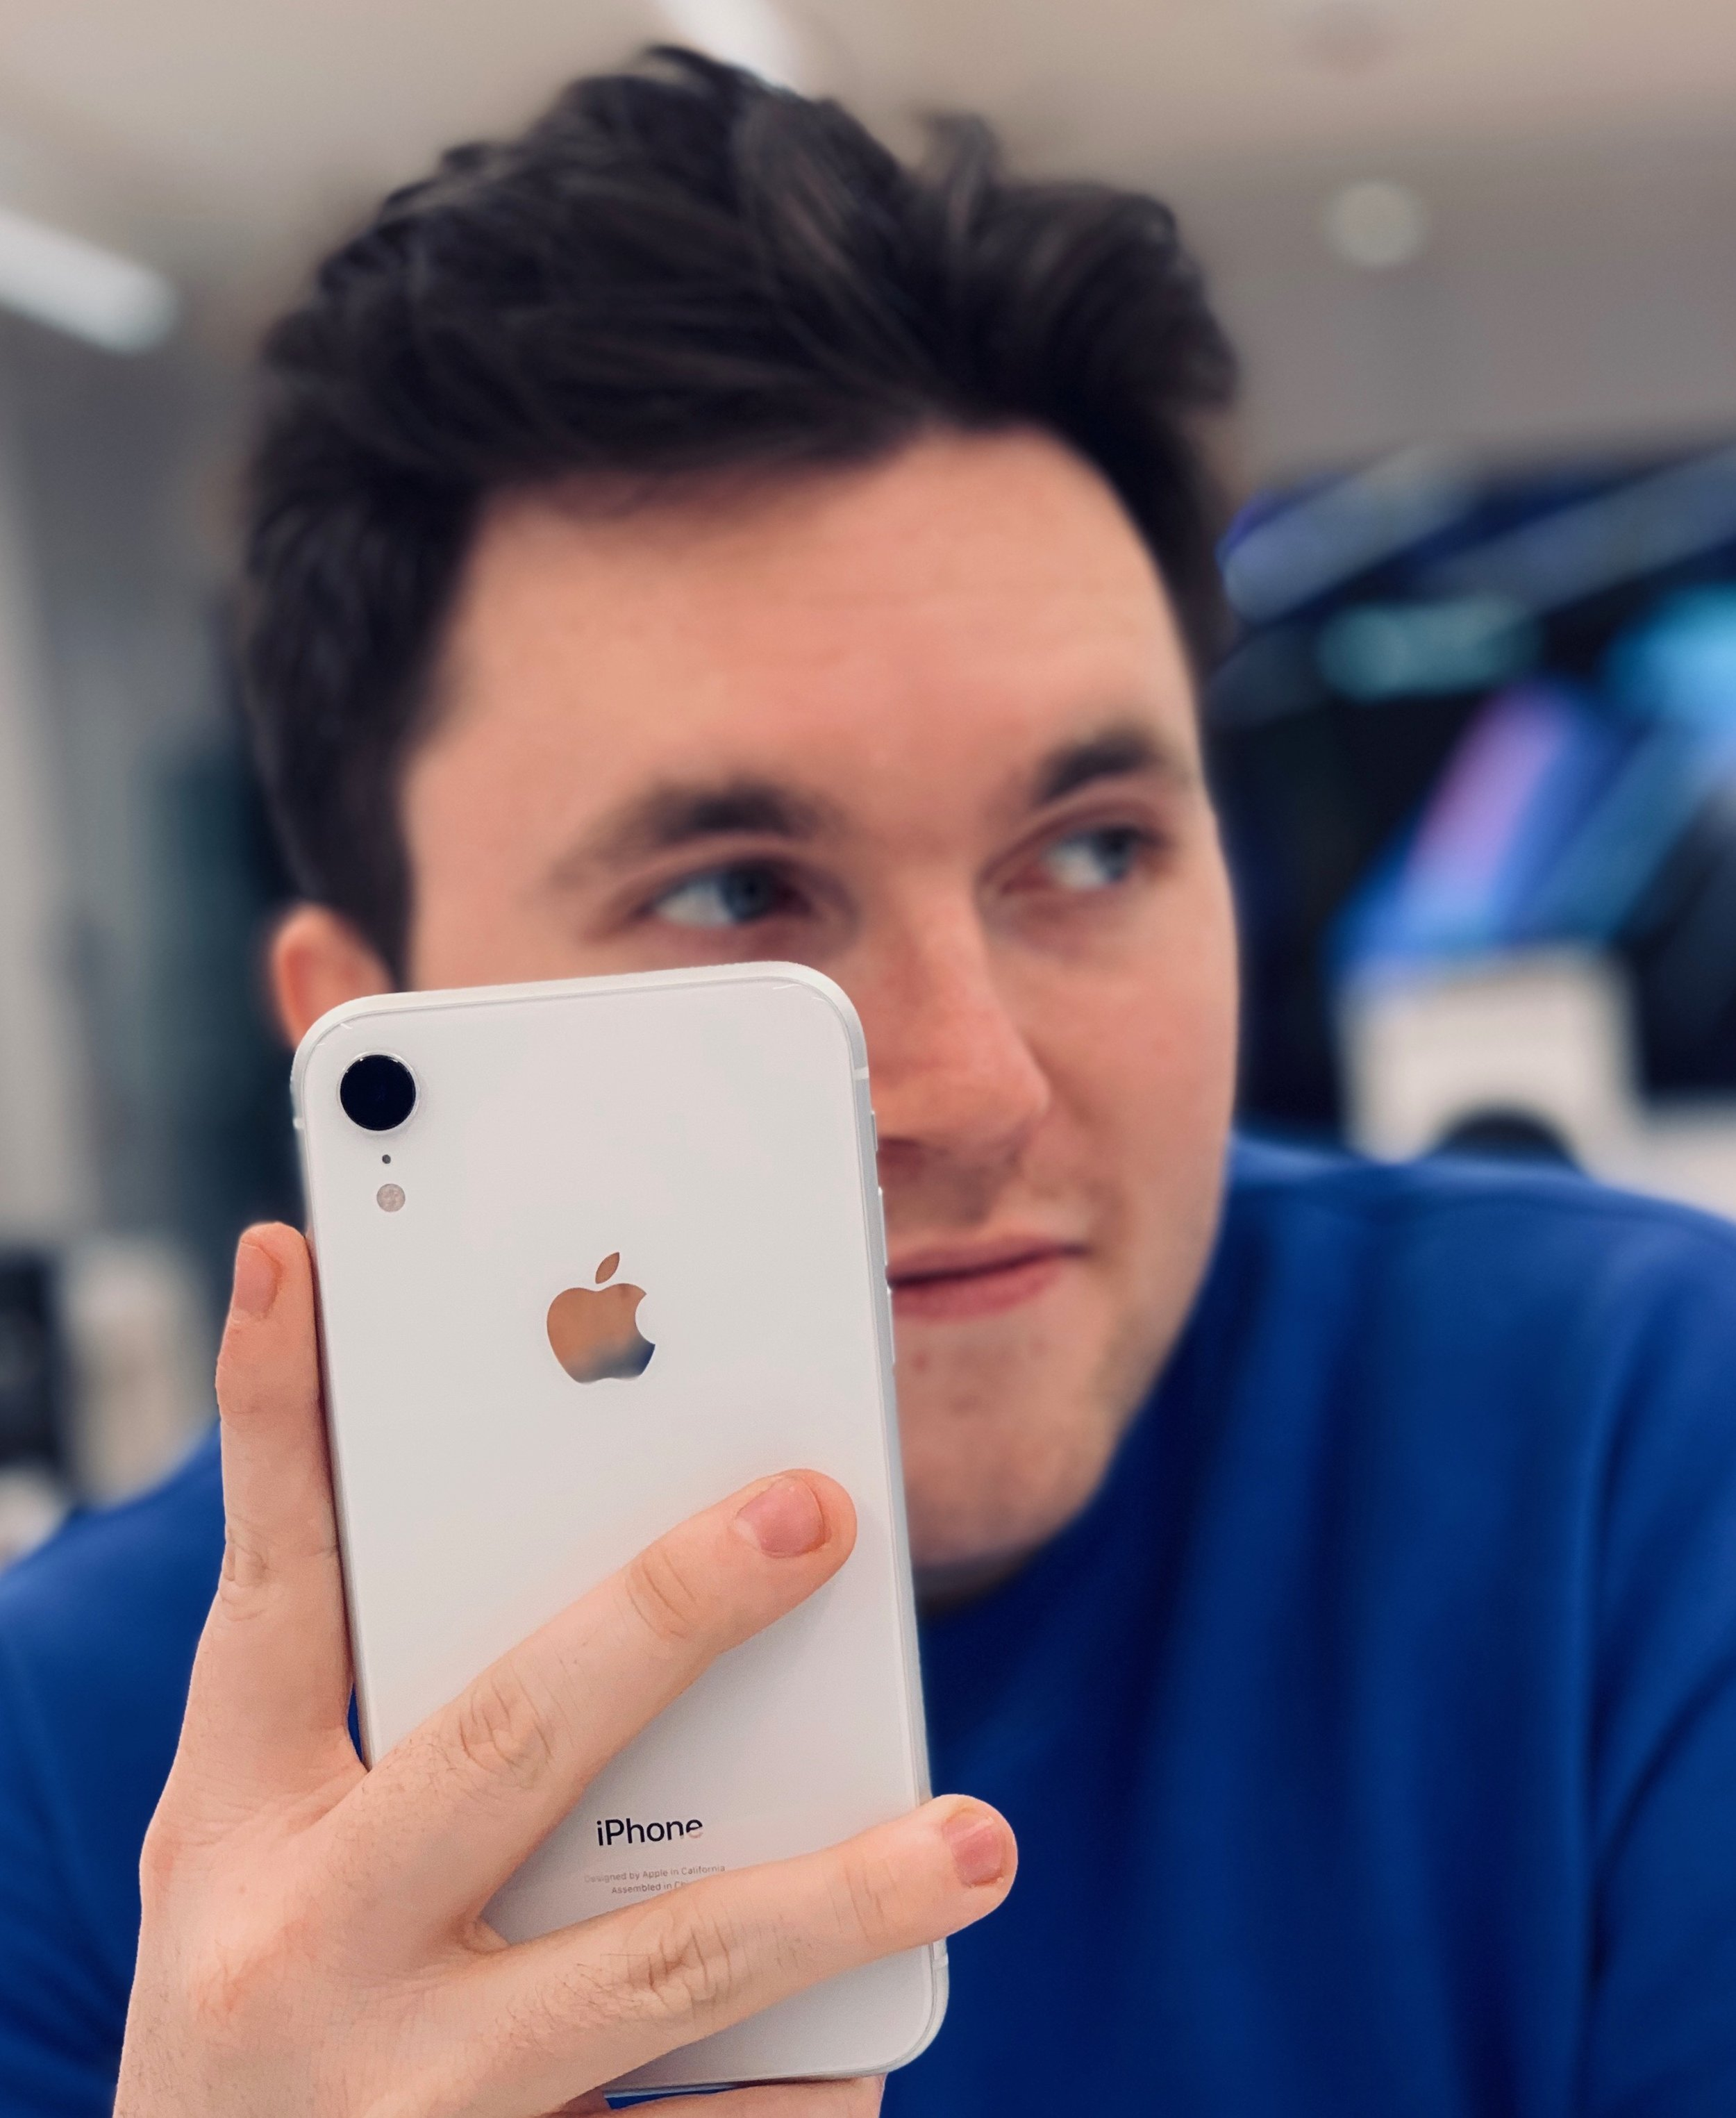 - After five years experience at bournemouth's Apple premium reseller, Here I am starting my own personal venture. I am an Apple certified iOS and mac technician and Apple award winning iphone photographer.I look forward to helping you get the most out of all your Apple devices, solve problems and share my knowledge with you.